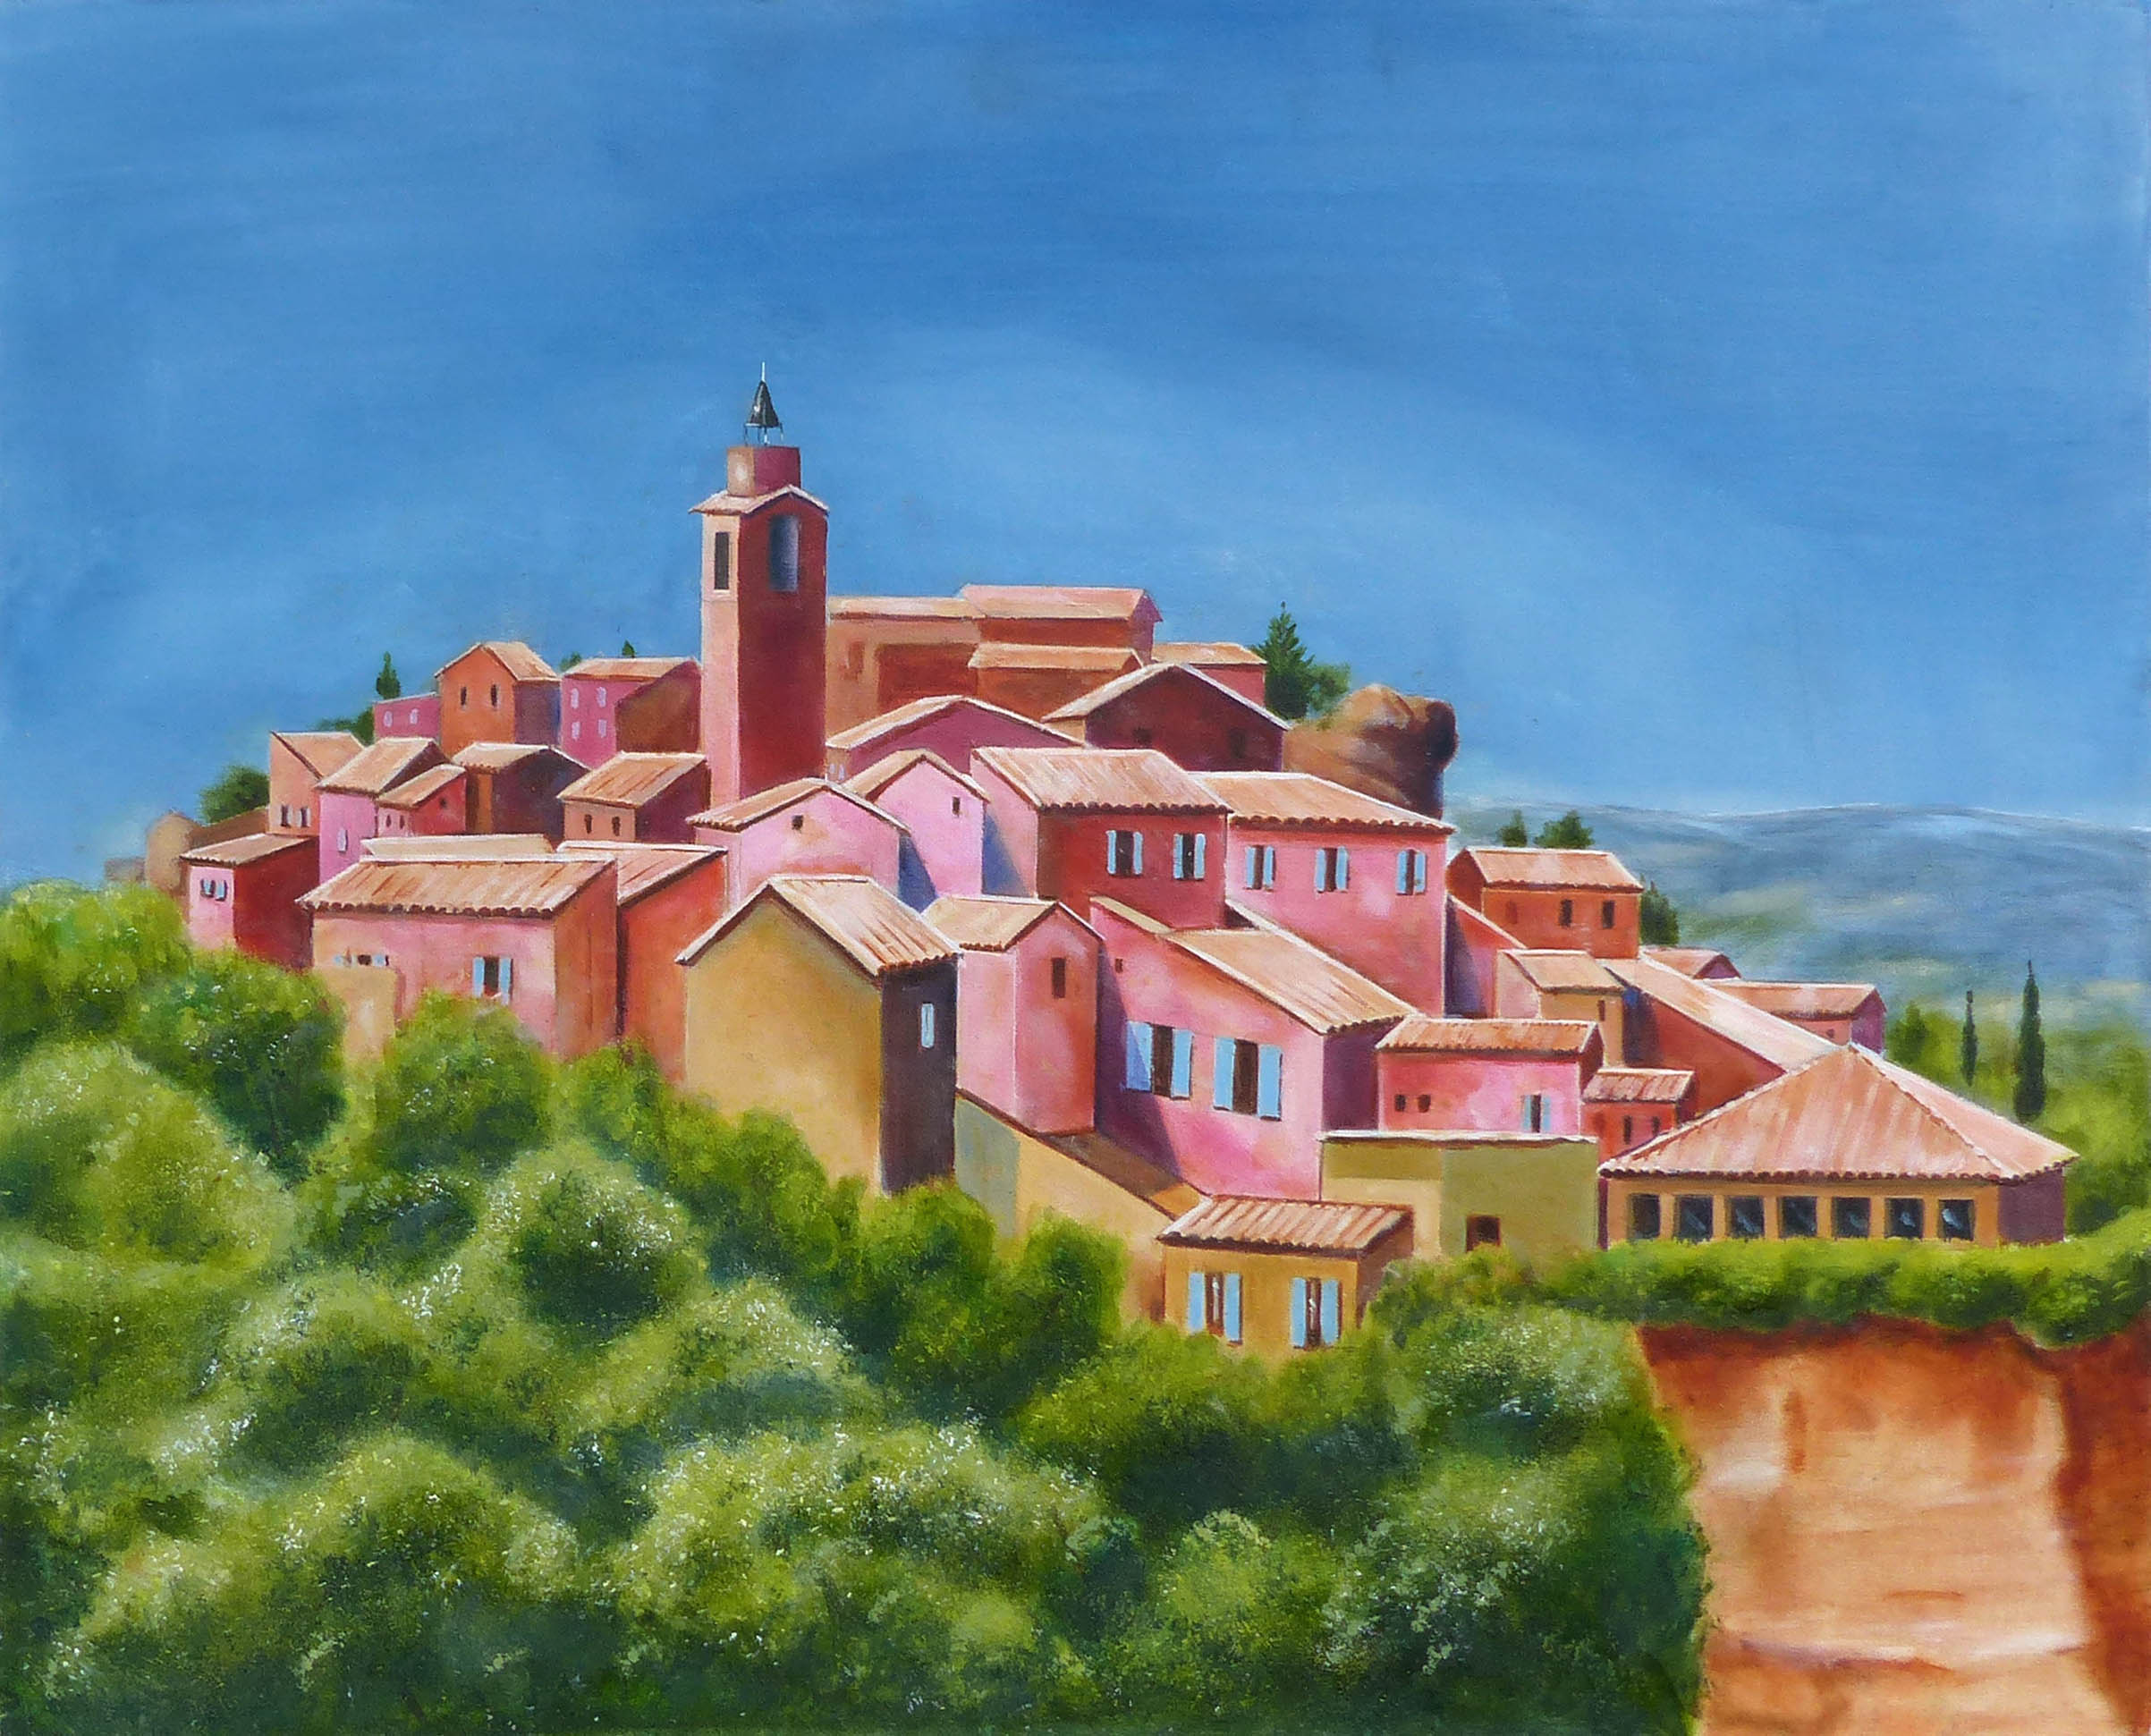 A typical hilltop village in the South of France, as seen from afar. Seemingly timeless.